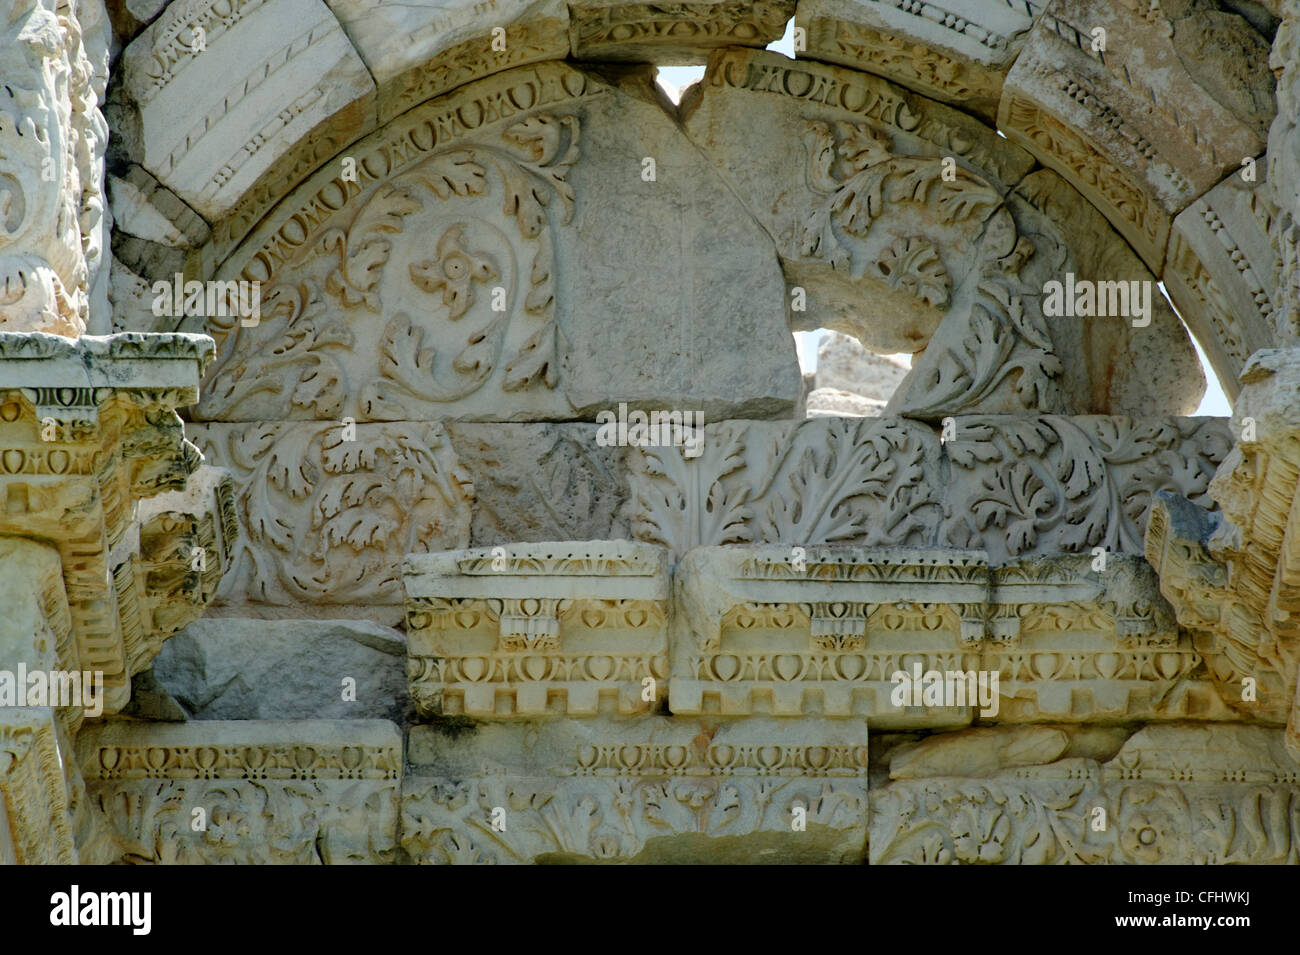 Aphrodisias. Turkey. Close up view of the western pediment of the Tetrapylon monumental gate dating from the 2nd - Stock Image